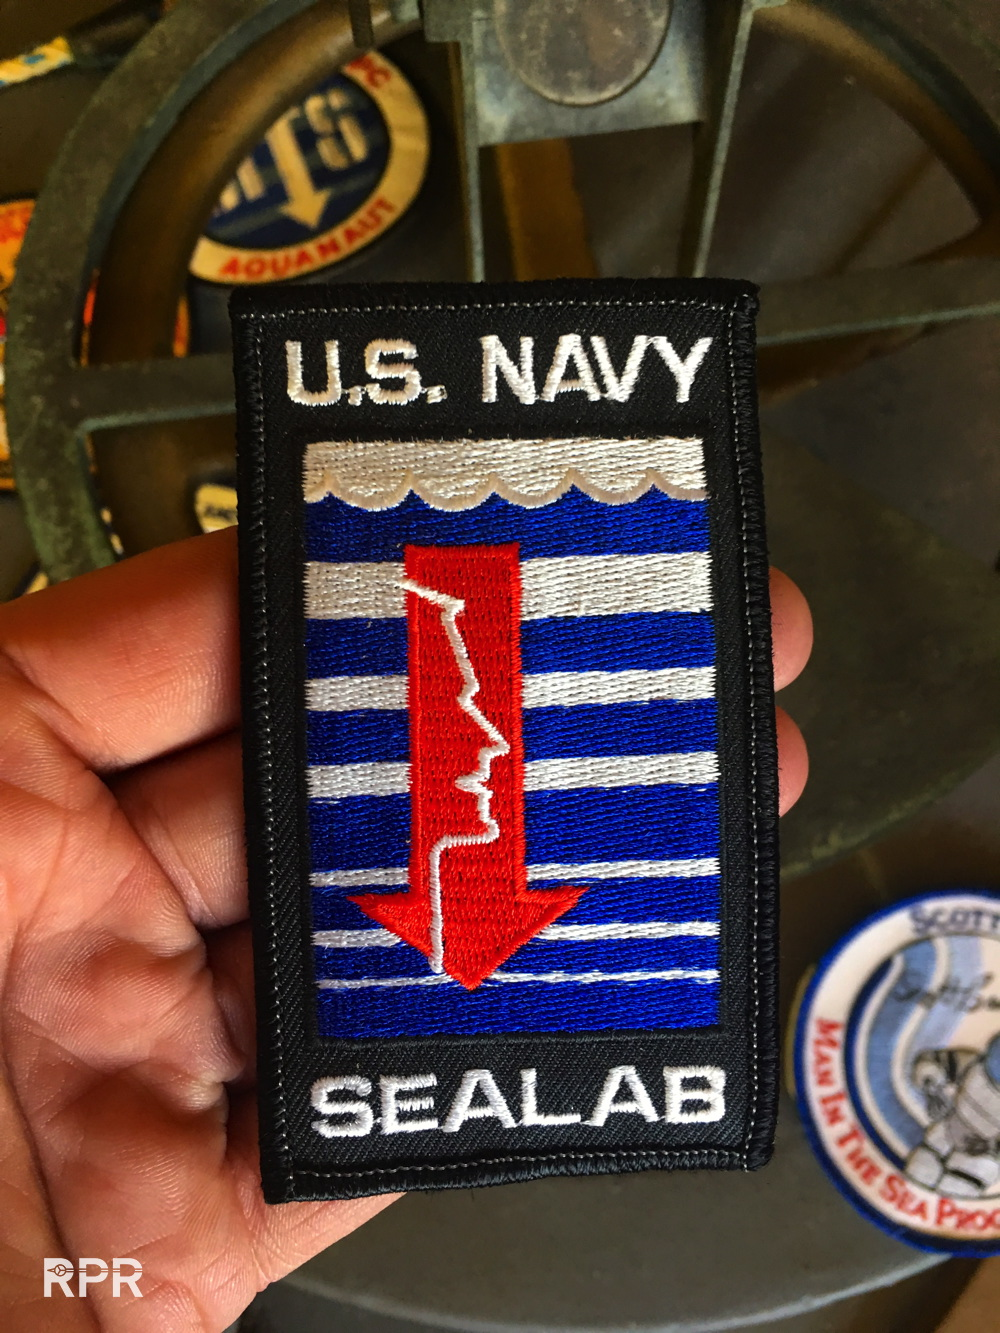 RPR_US_Navy_Sealab